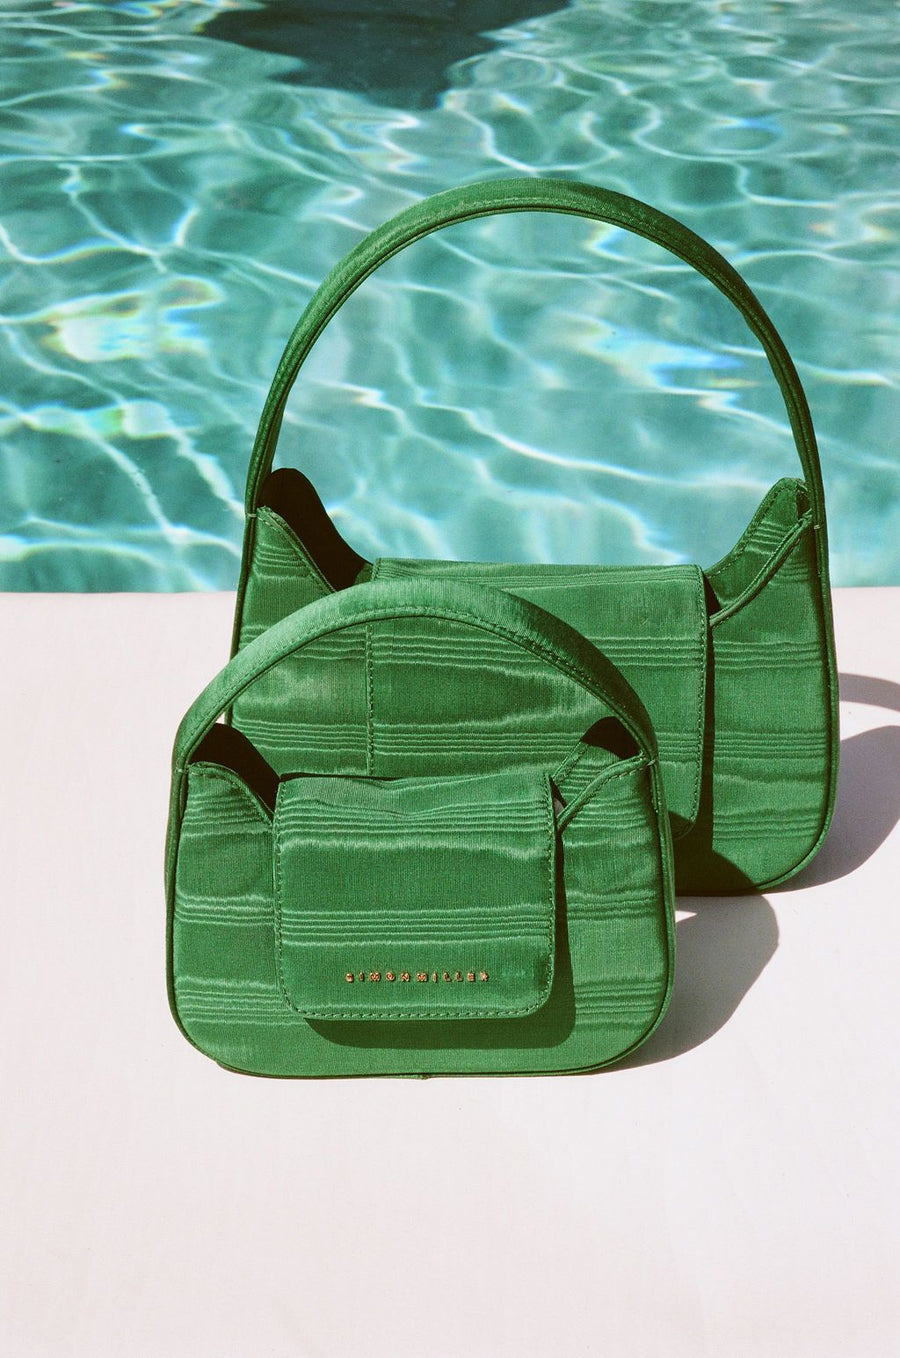 Retro Bag in Jungle Green